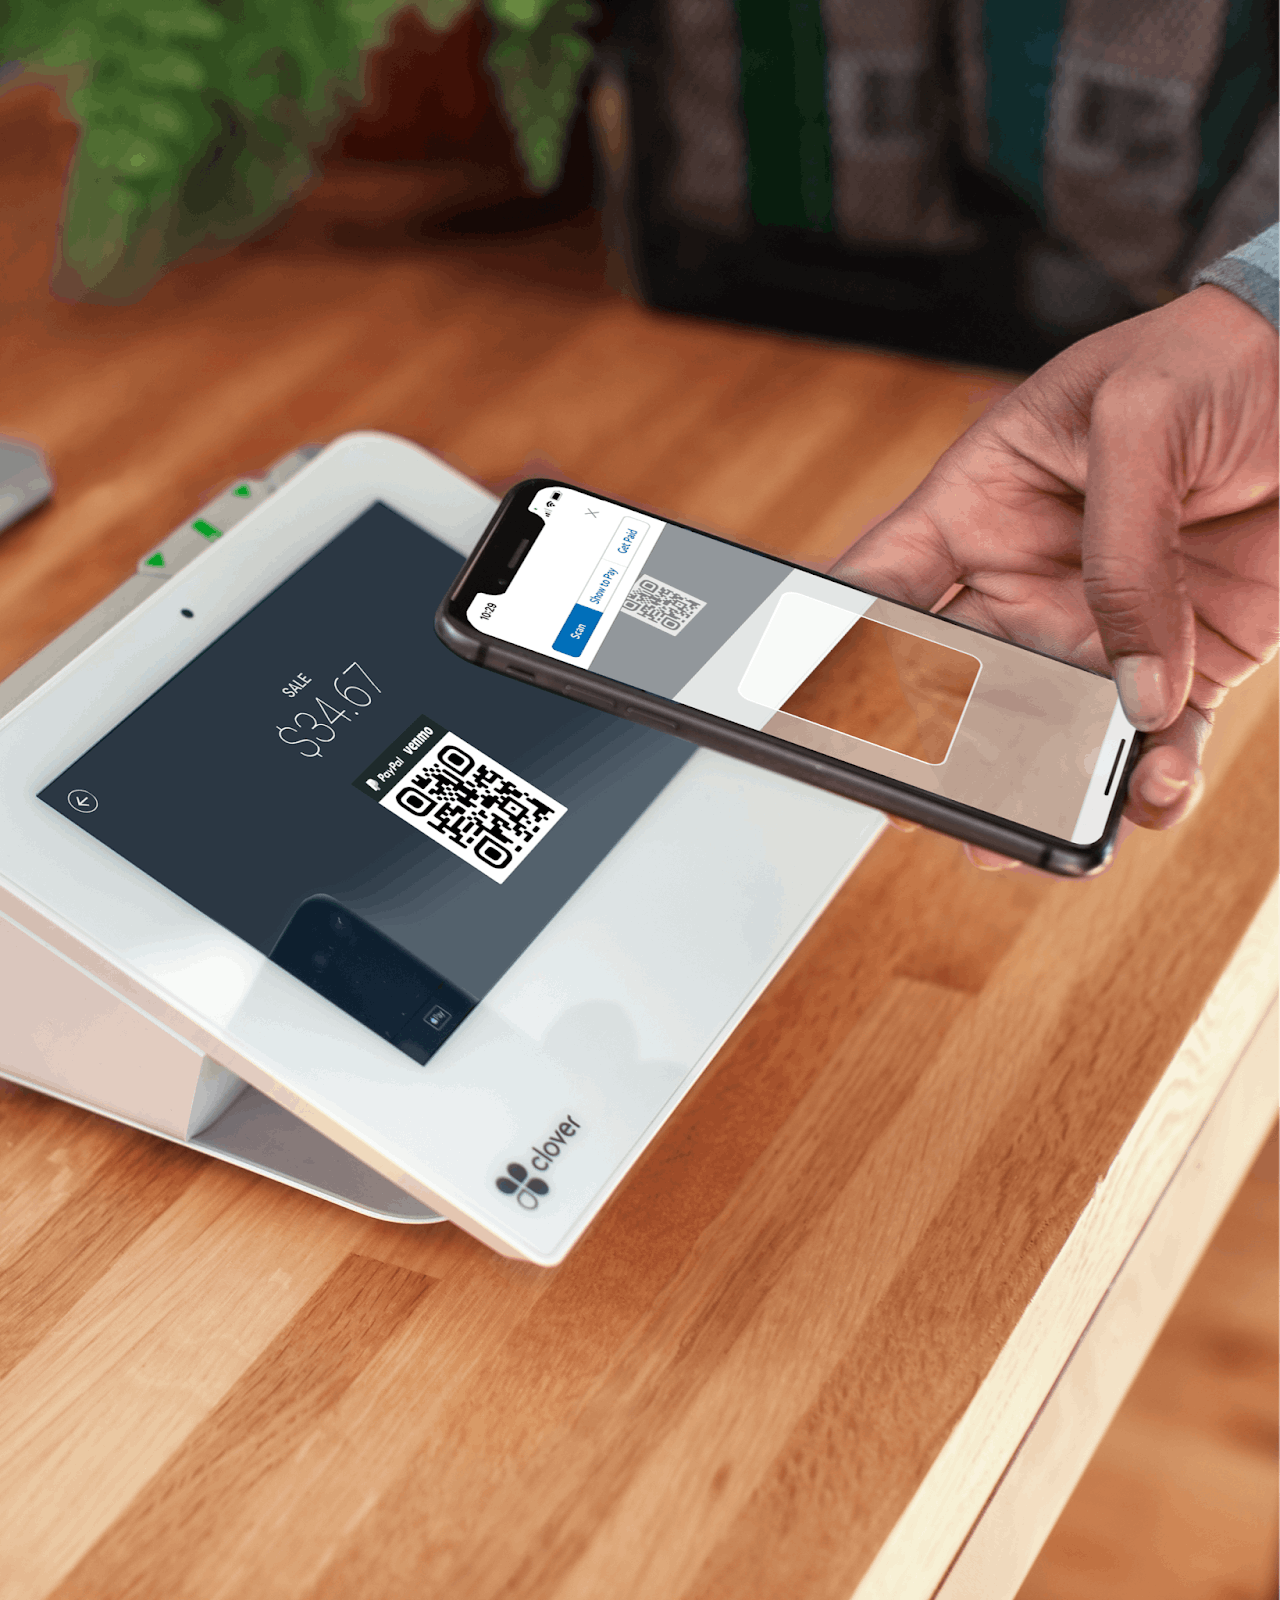 Touch-free in-store payment through a POS system and Venmo app